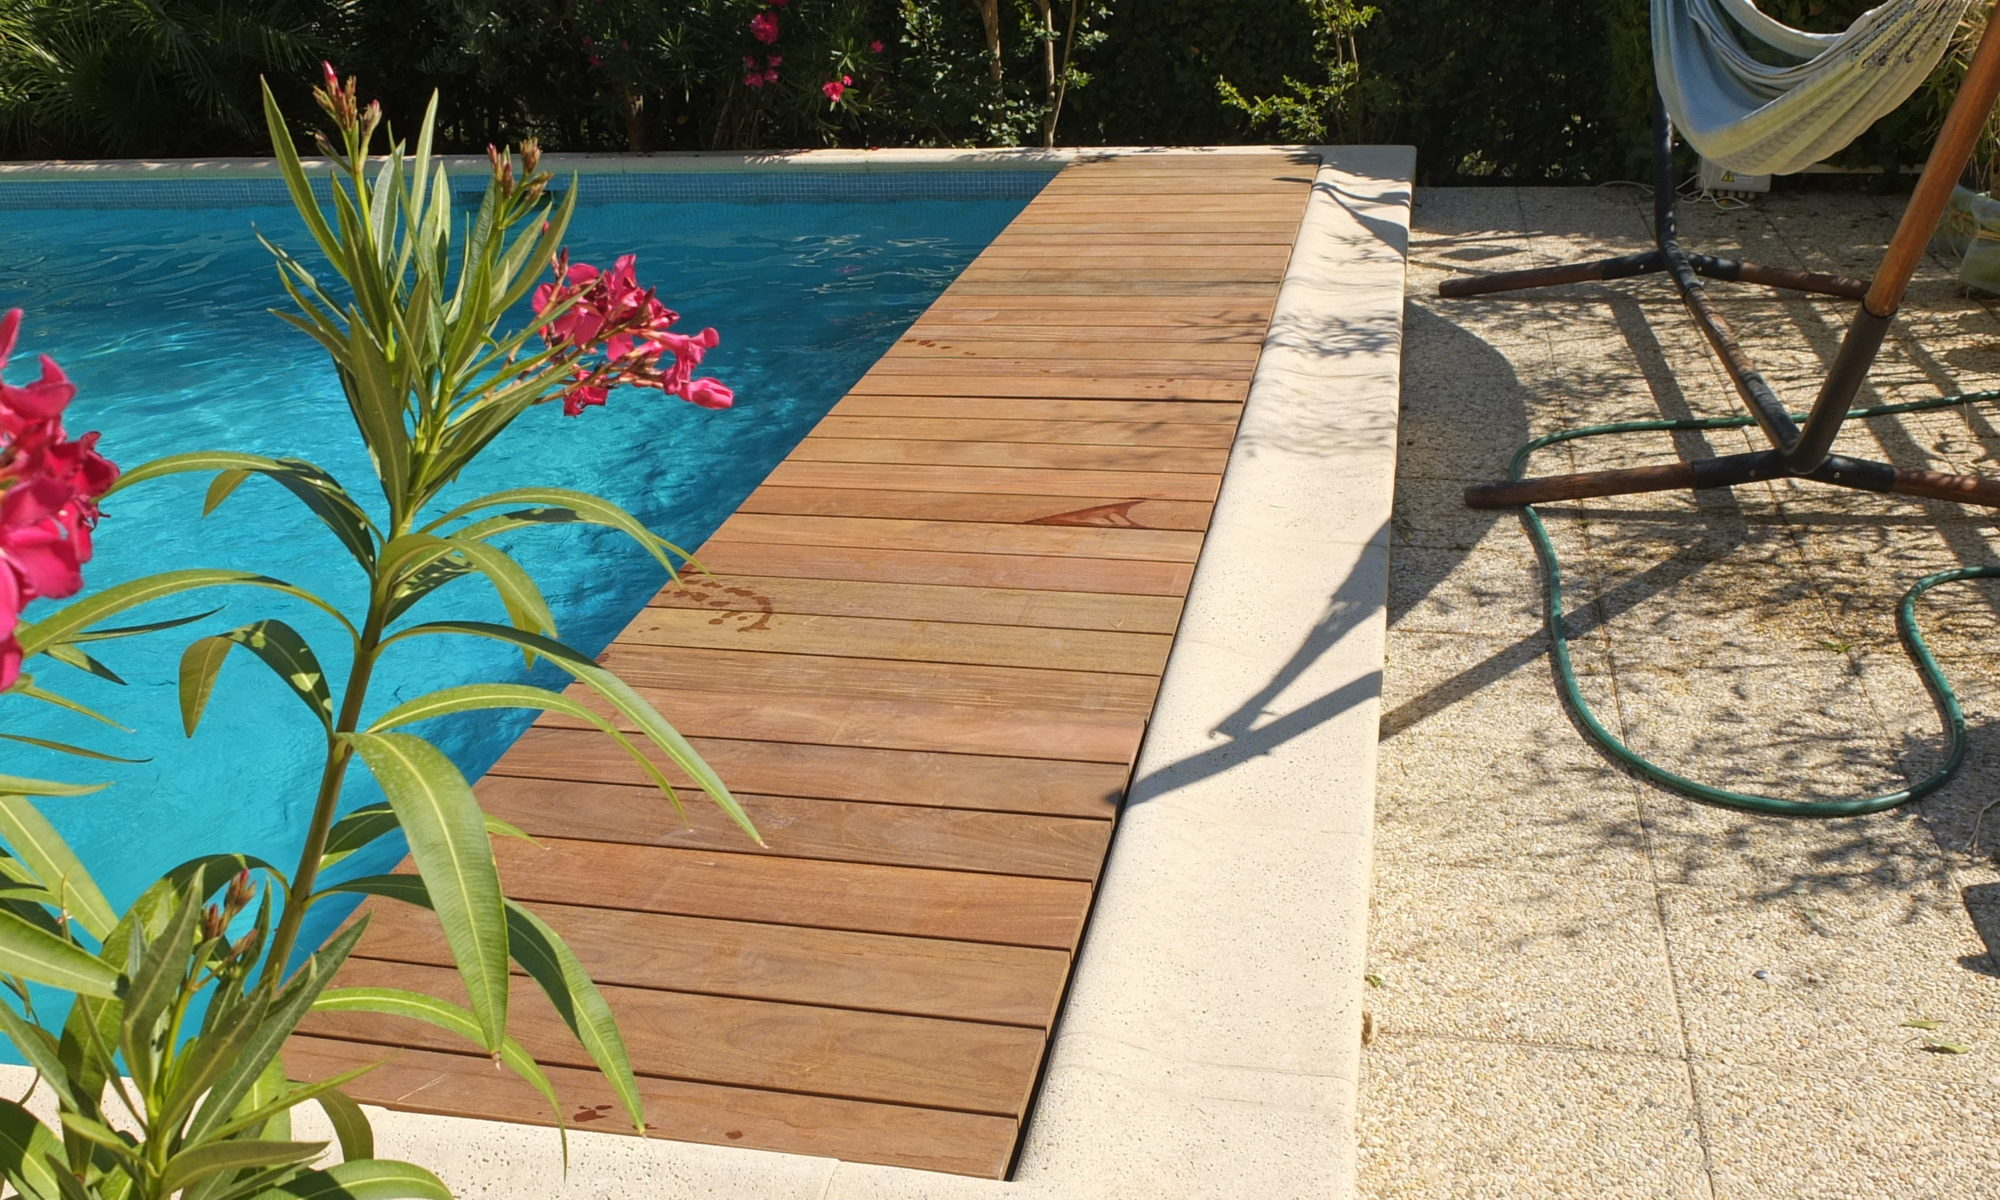 Volet roulant immerges store piscine fabricant volet - Piscine avec volet roulant immerge ...